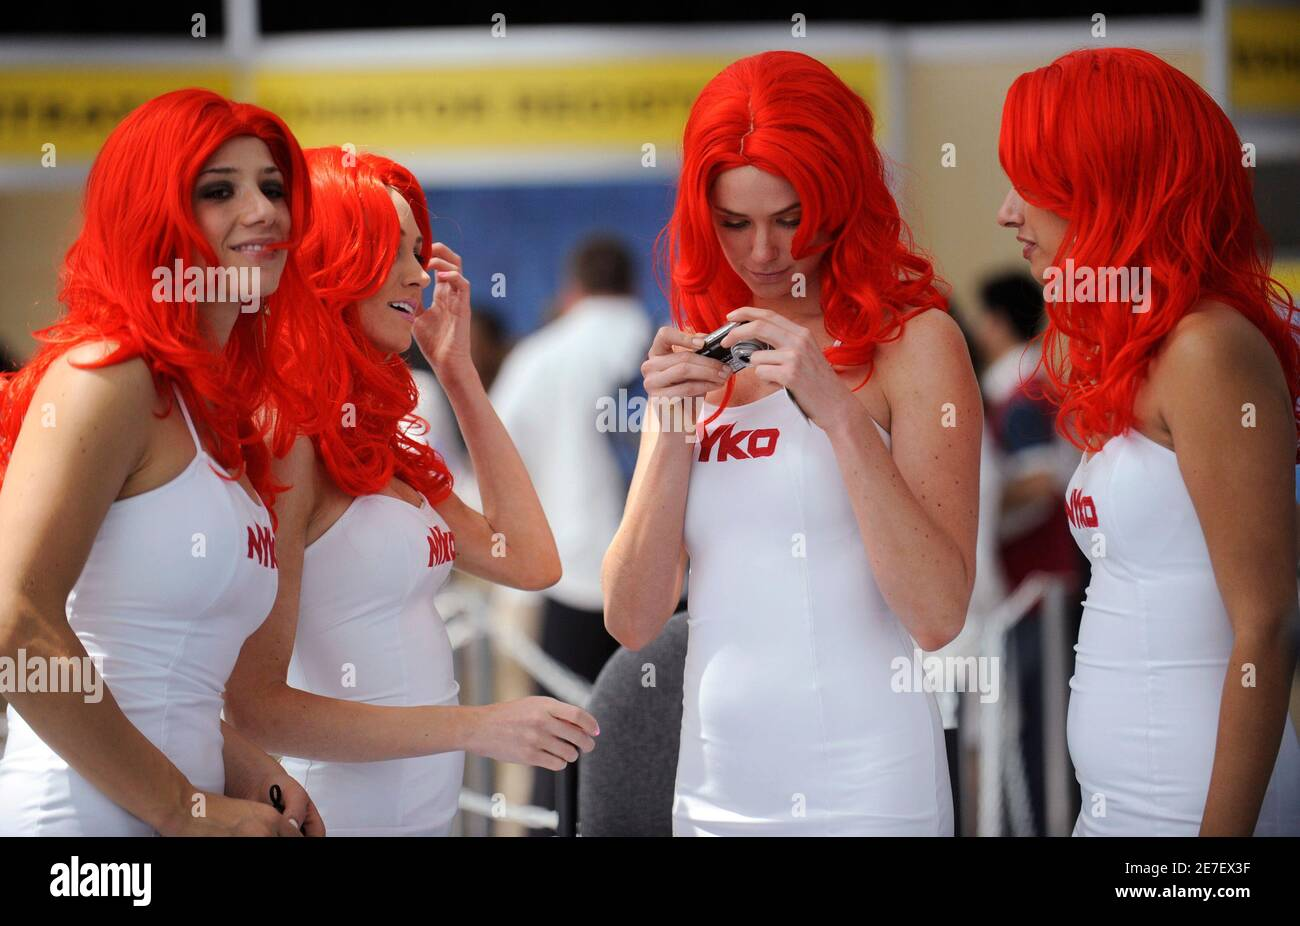 Girls wearing matching outfits promote Nyko Technologies at the E3 Electronic Entertainment Expo in Los Angeles June 2, 2009.   REUTERS/Phil McCarten  (UNITED STATES ENTERTAINMENT BUSINESS) Foto Stock